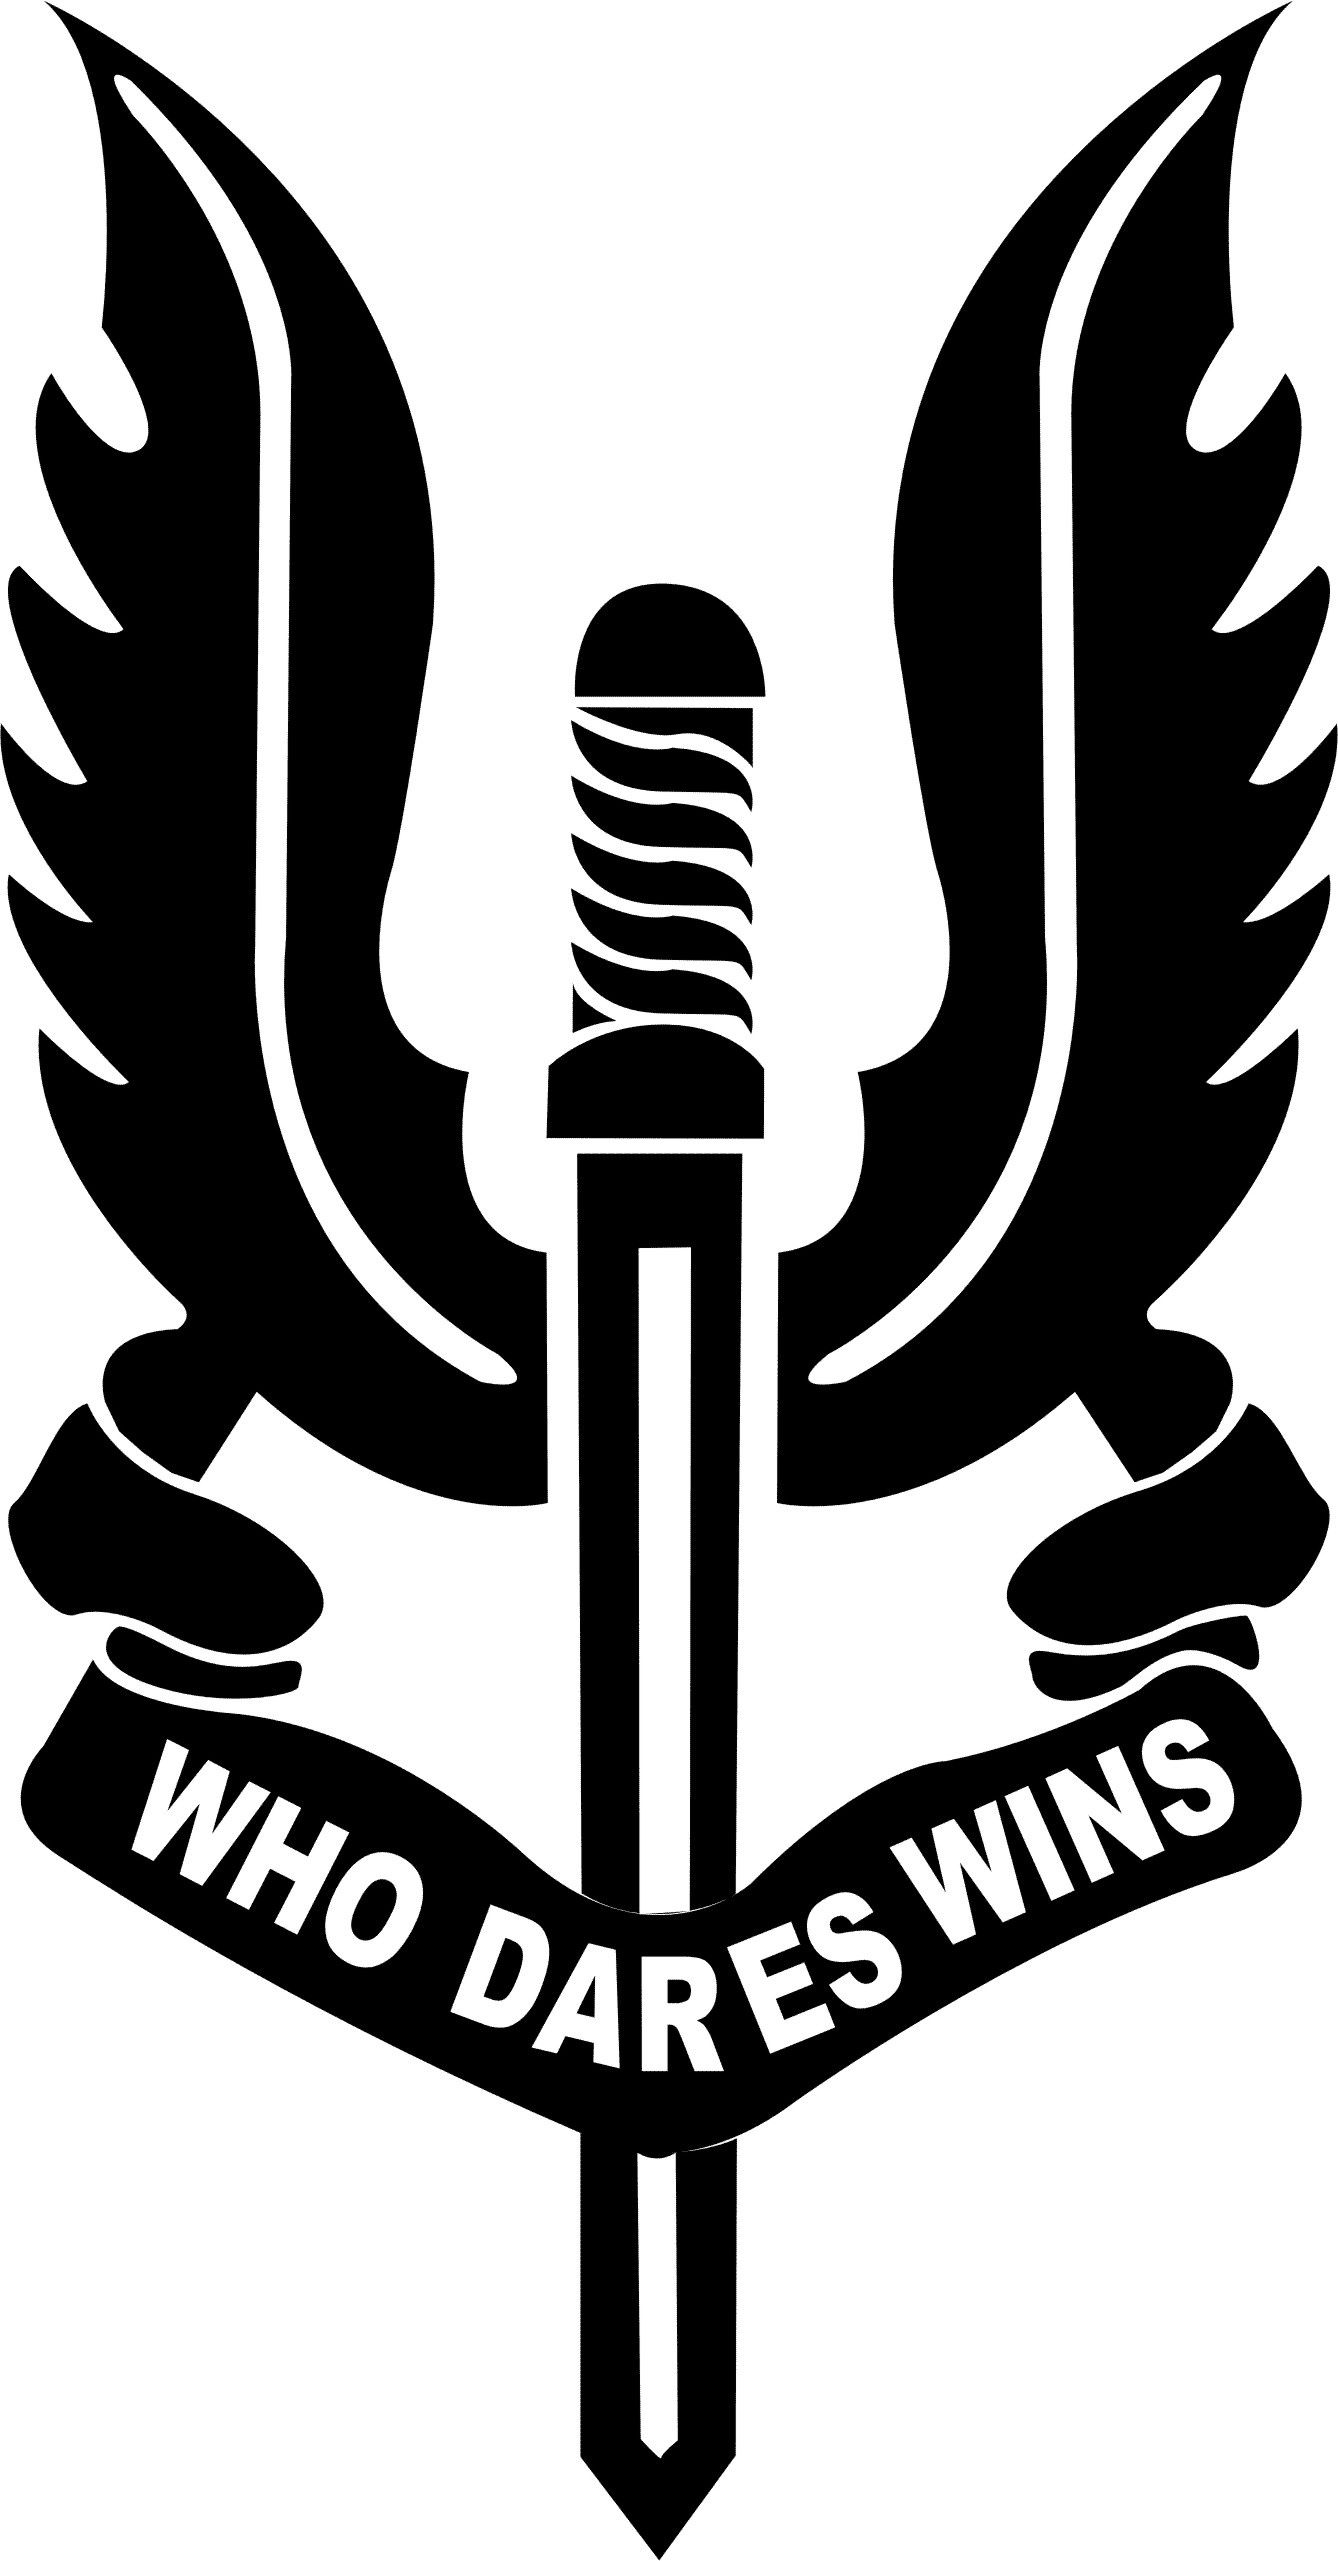 Who Dares Wins Quotes To Remember Pinterest Military Special Forces And Special Air Service